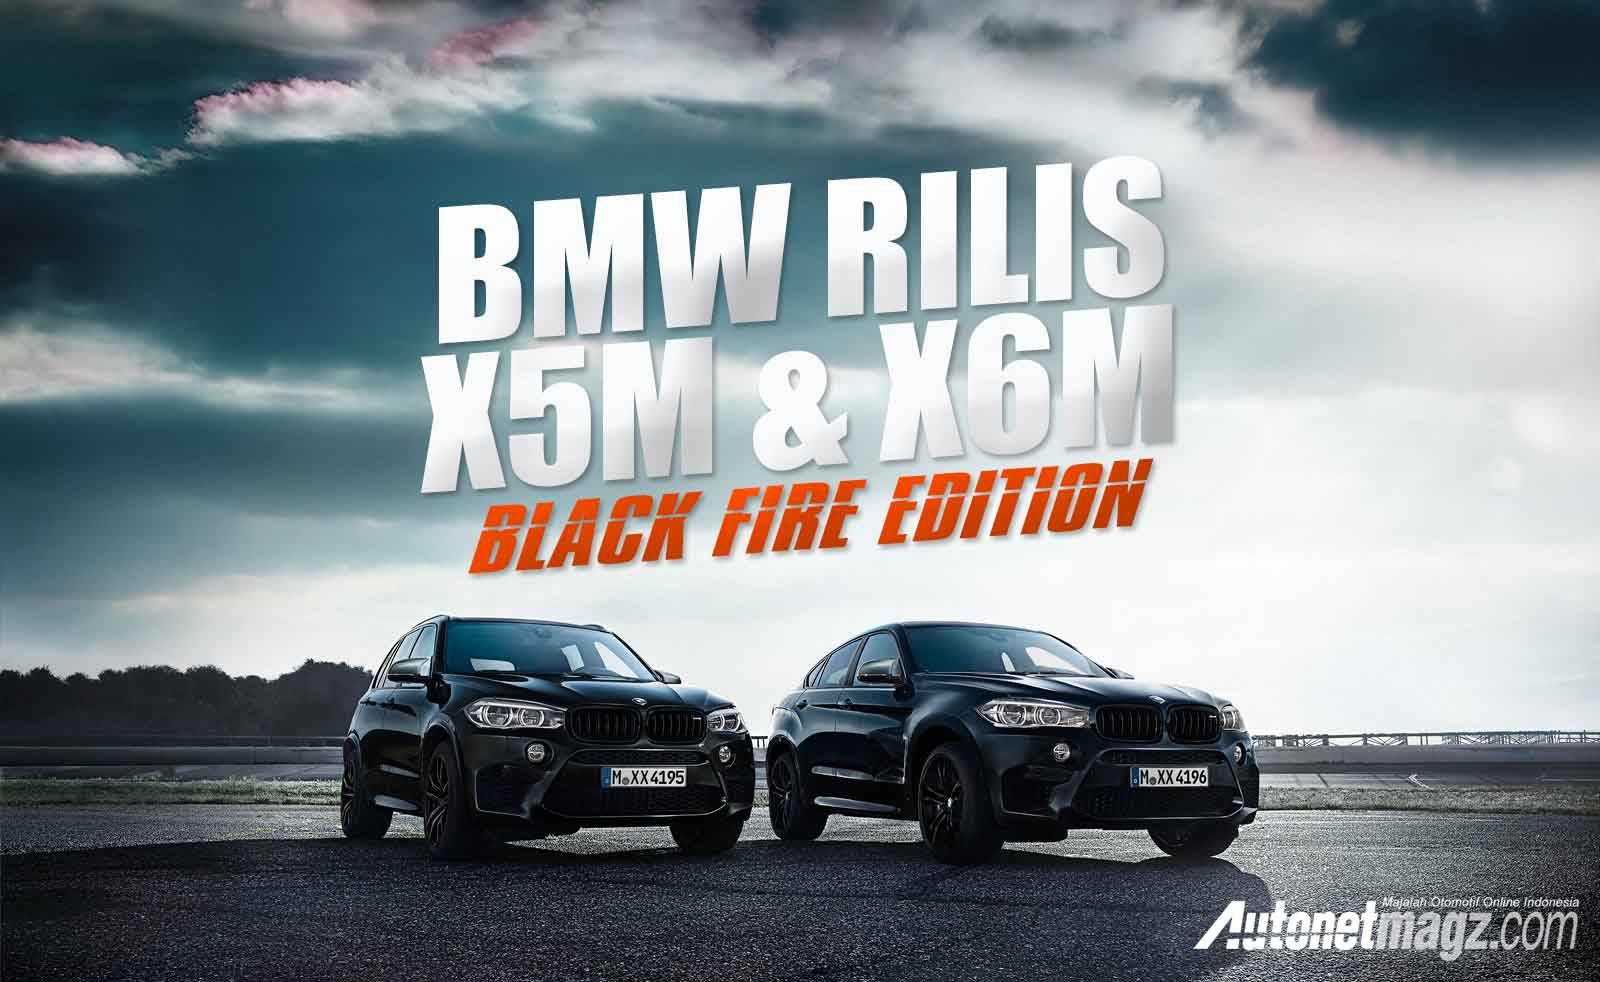 , New BMW X5 M X6 M Black Fire Editions cover: New BMW X5 M X6 M Black Fire Editions cover